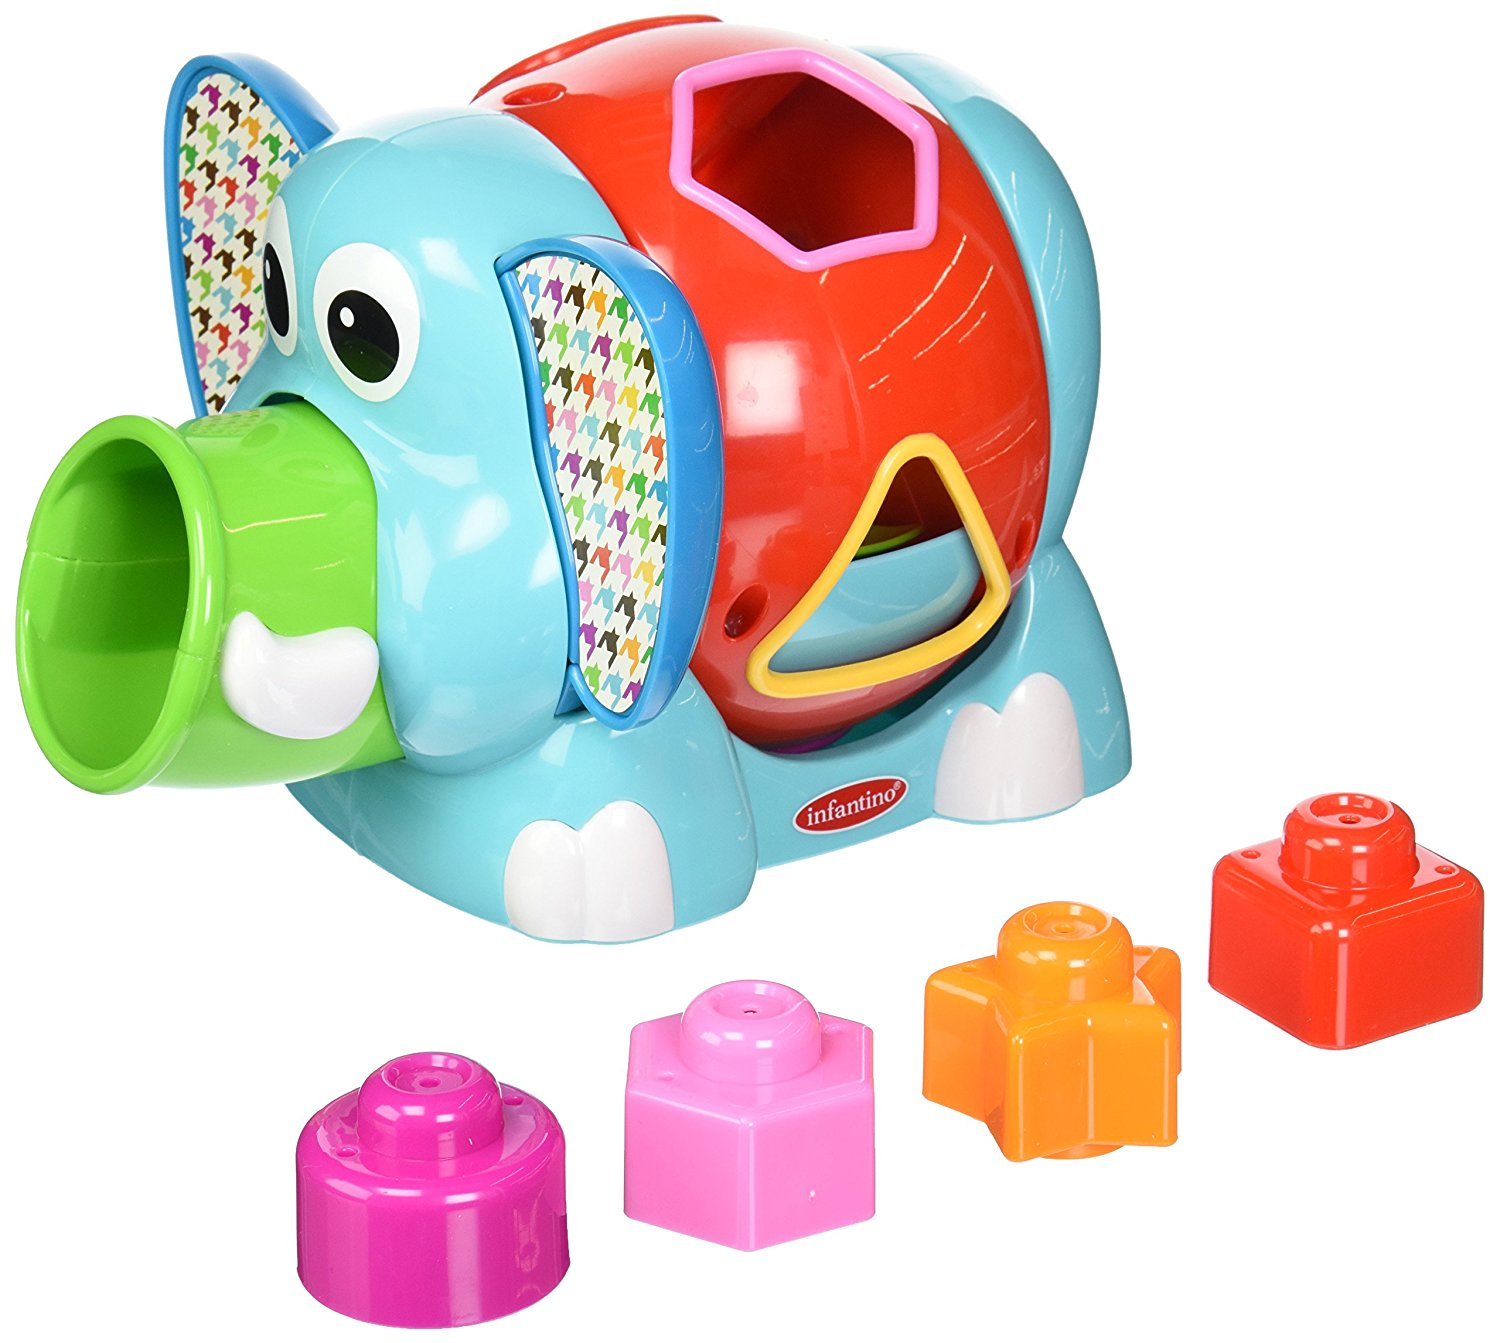 Jumbo Shape Sorter, Discontinued 38pc Therapy Lacing 36pg Nuts Busy Bolts Activity Store... by Infantino